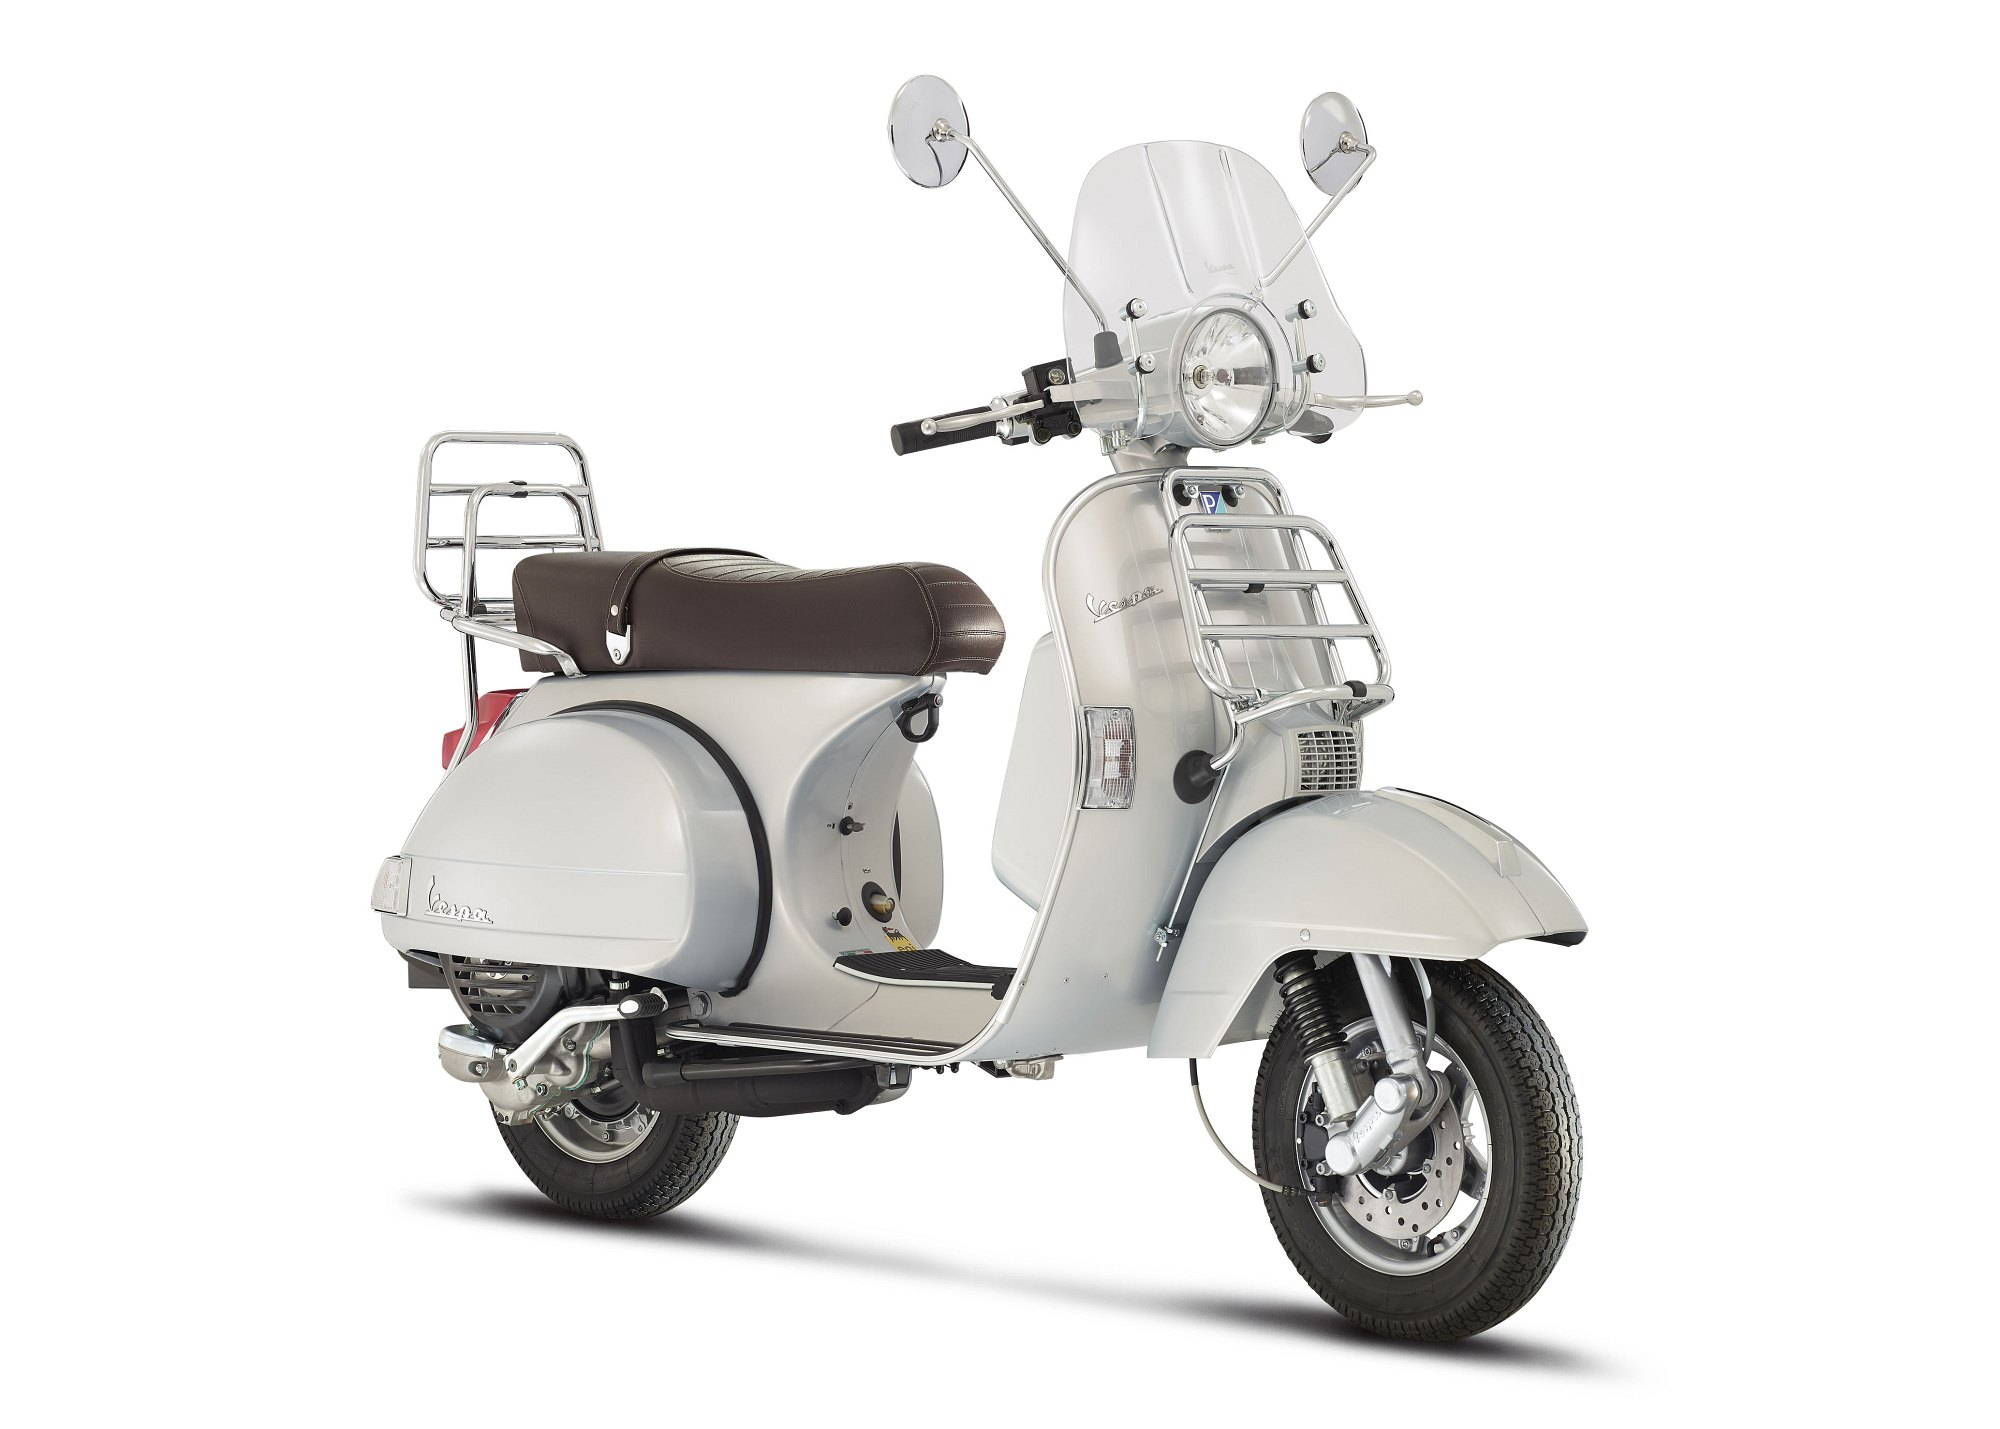 gebrauchte vespa px 125 touring motorr der kaufen. Black Bedroom Furniture Sets. Home Design Ideas